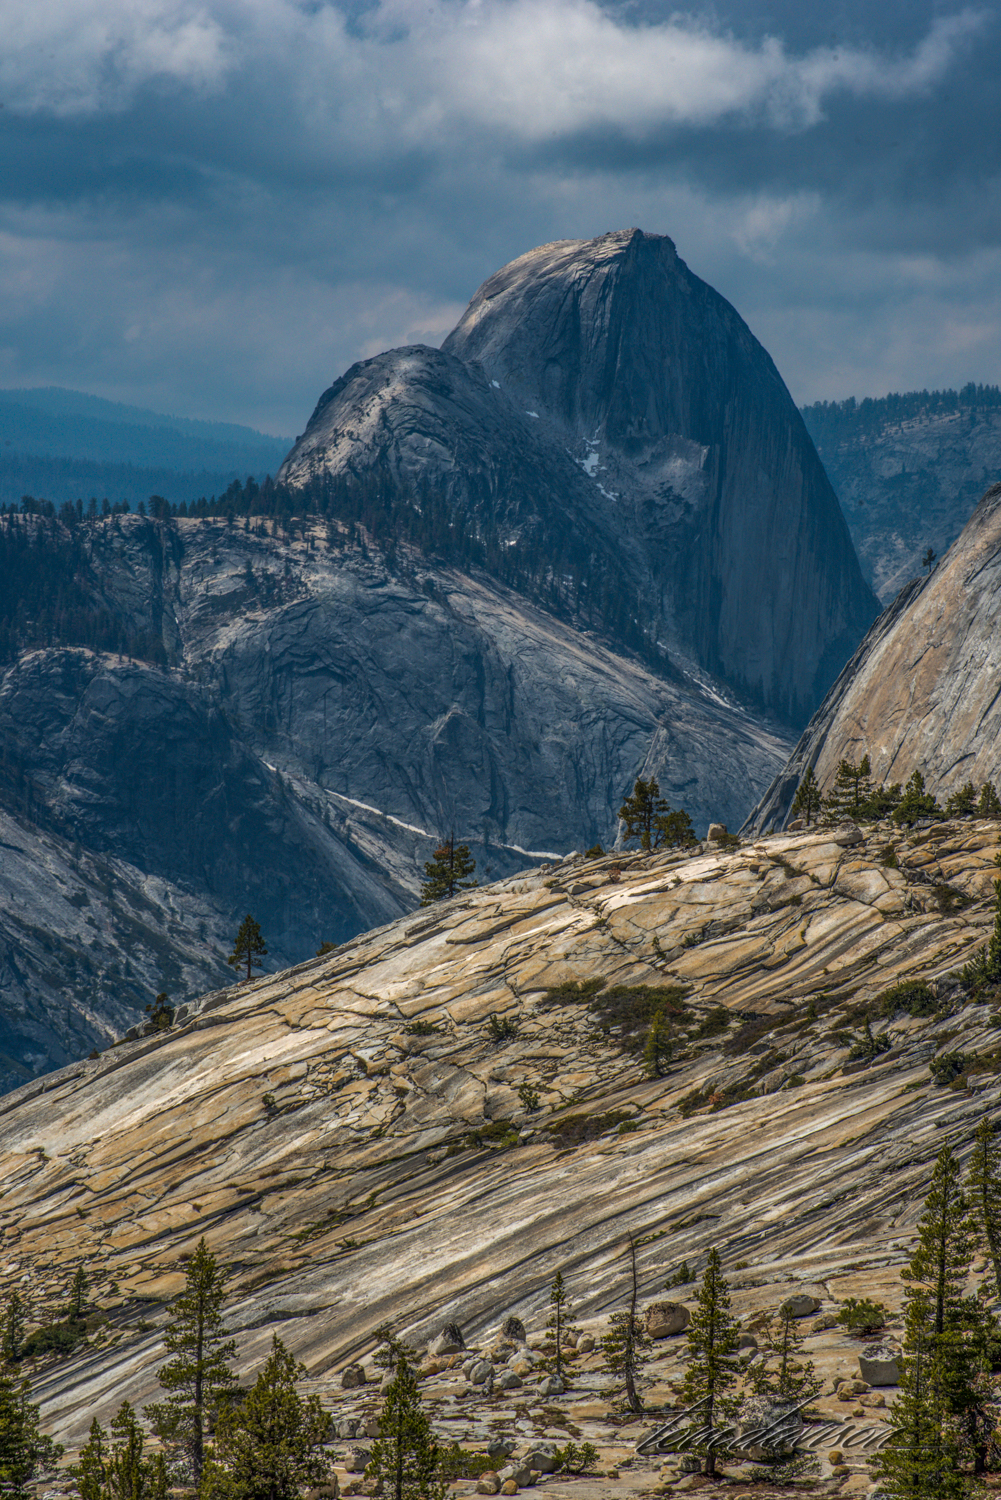 Yosemite National Park with Half Dome as seen from Olmstead Point.